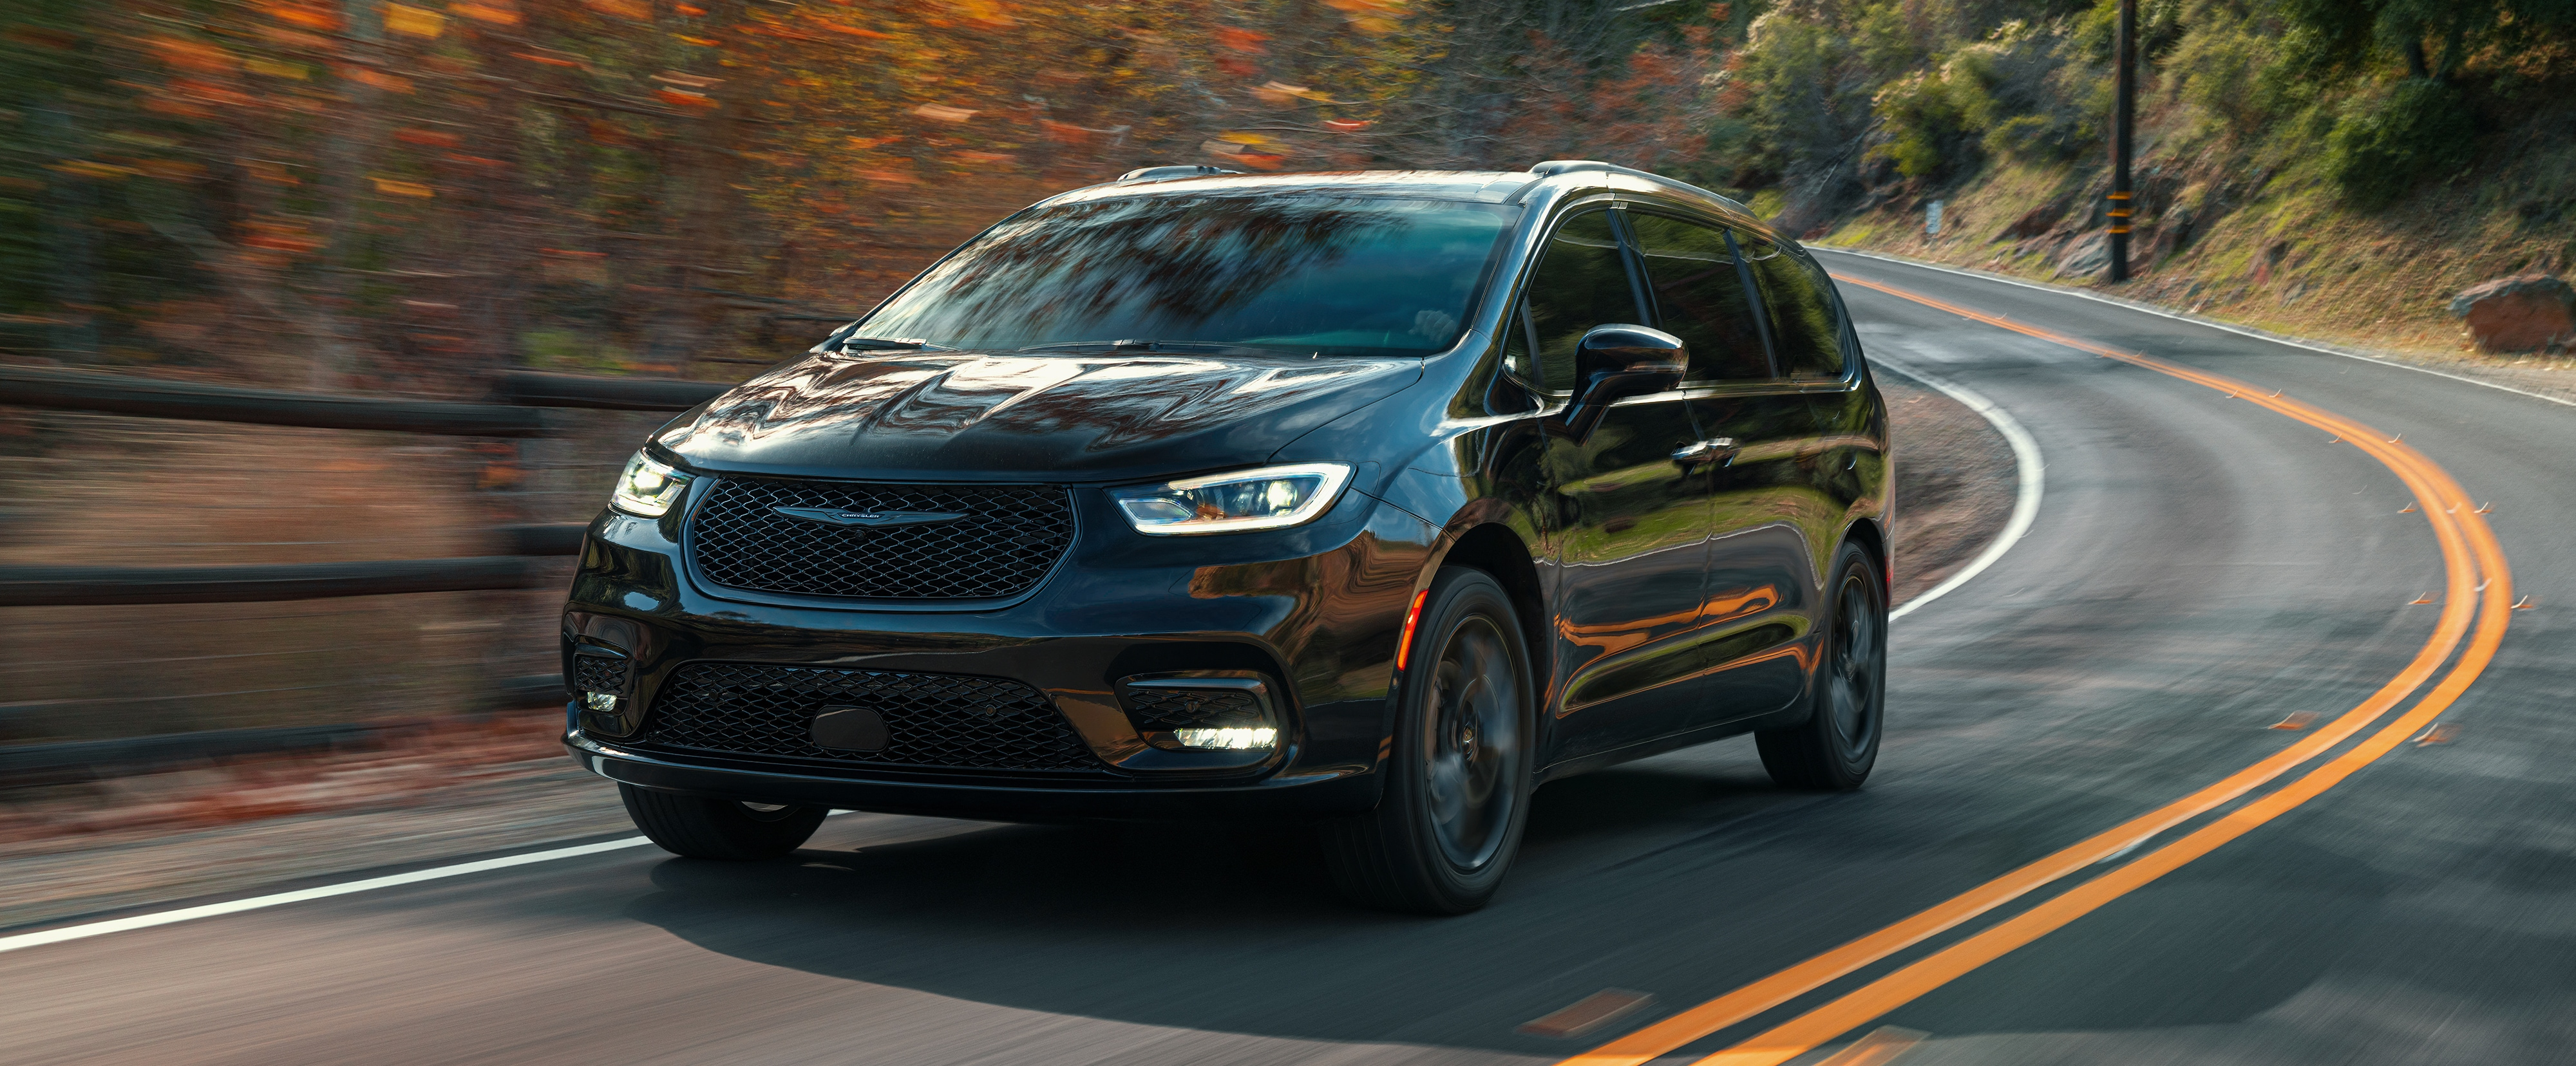 2021 Chrysler Pacifica driving on a road in front of red and gold fall trees; Chrysler Pacifica is available at our RI Dealership